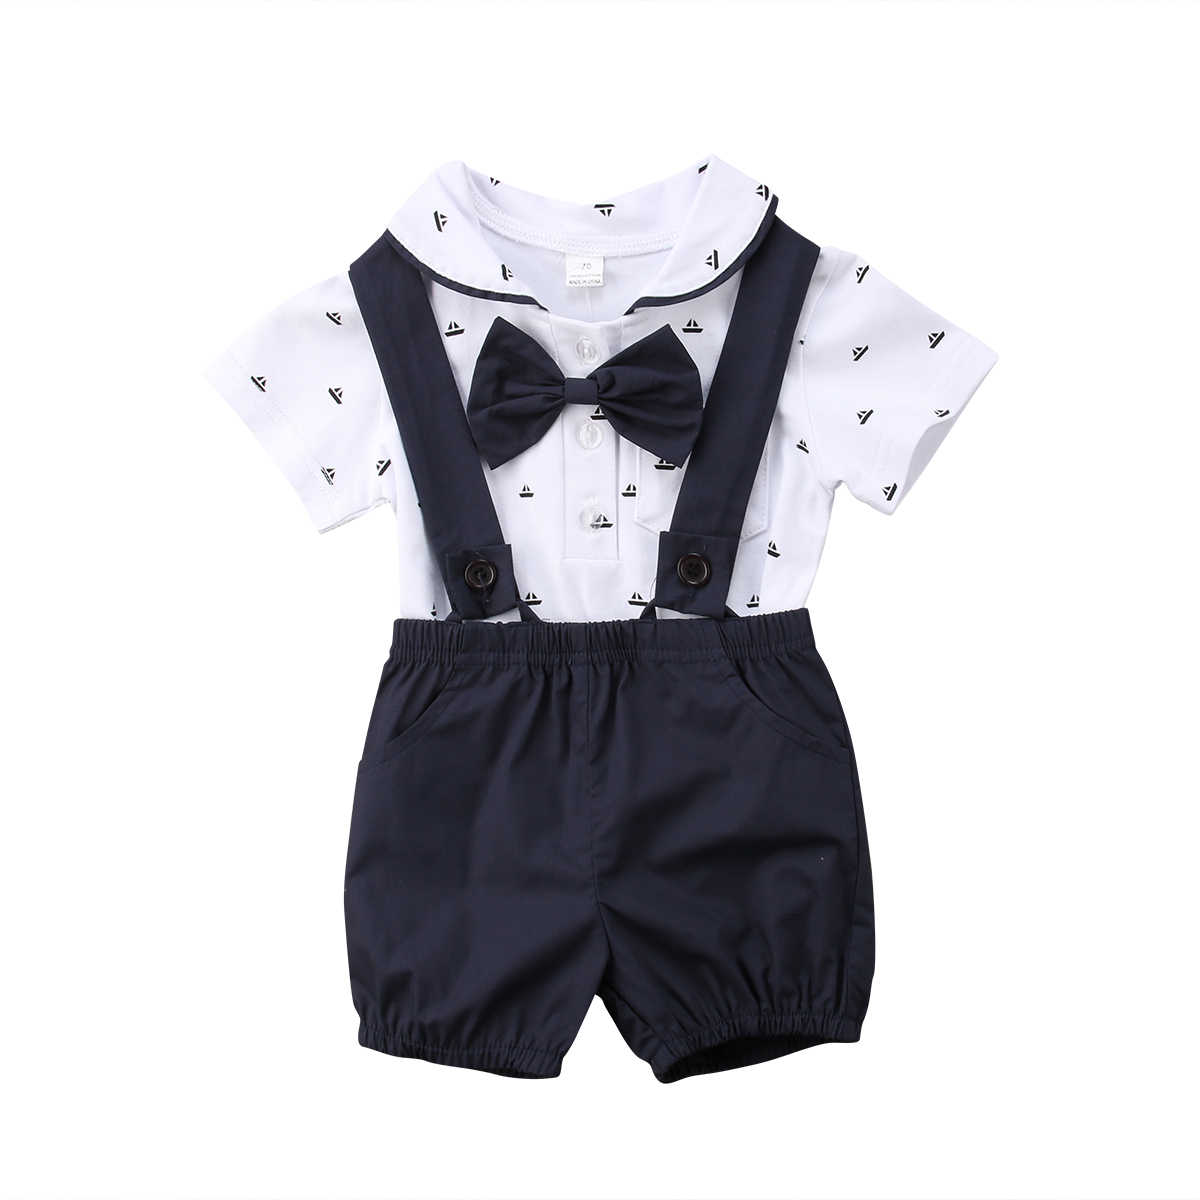 550f58818e9 Detail Feedback Questions about 2018 Summer Newborn Kid Baby Boy Gentleman  Outfit Clothes Romper Jumpsuit Bib Shorts Black Red Set on Aliexpress.com  ...